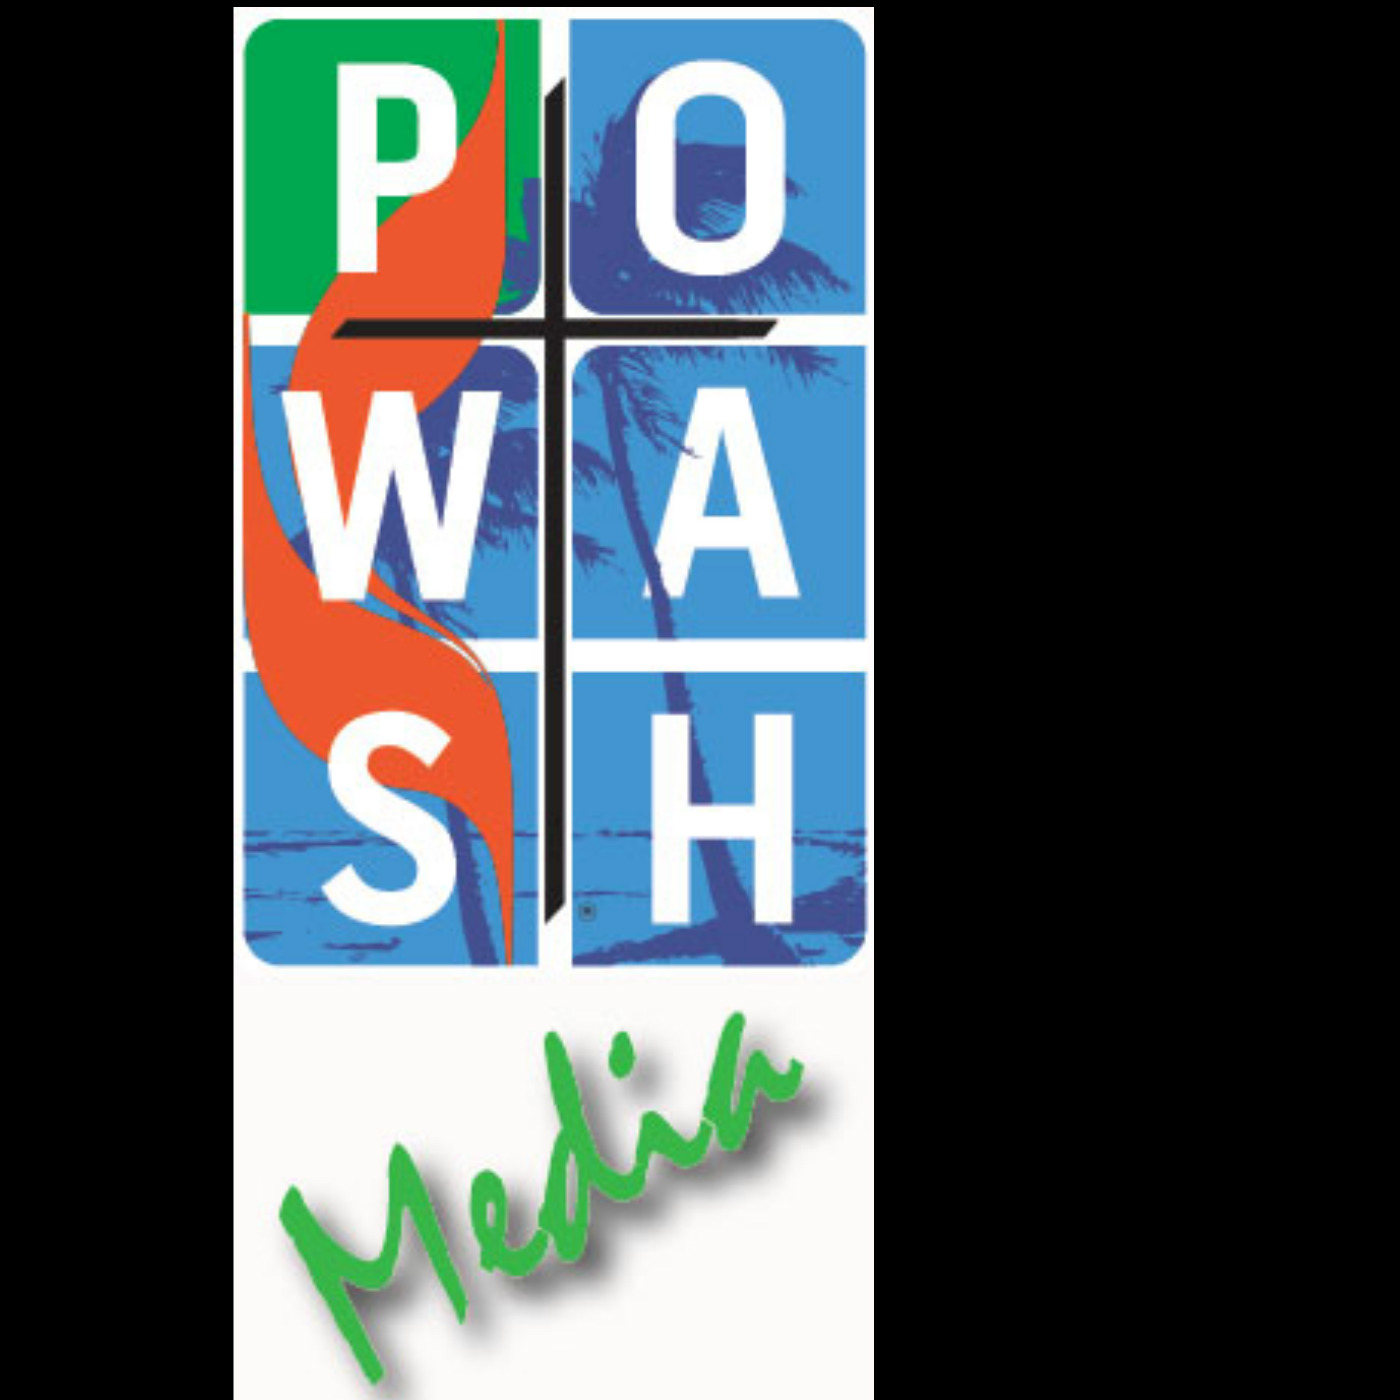 POWASH Messages